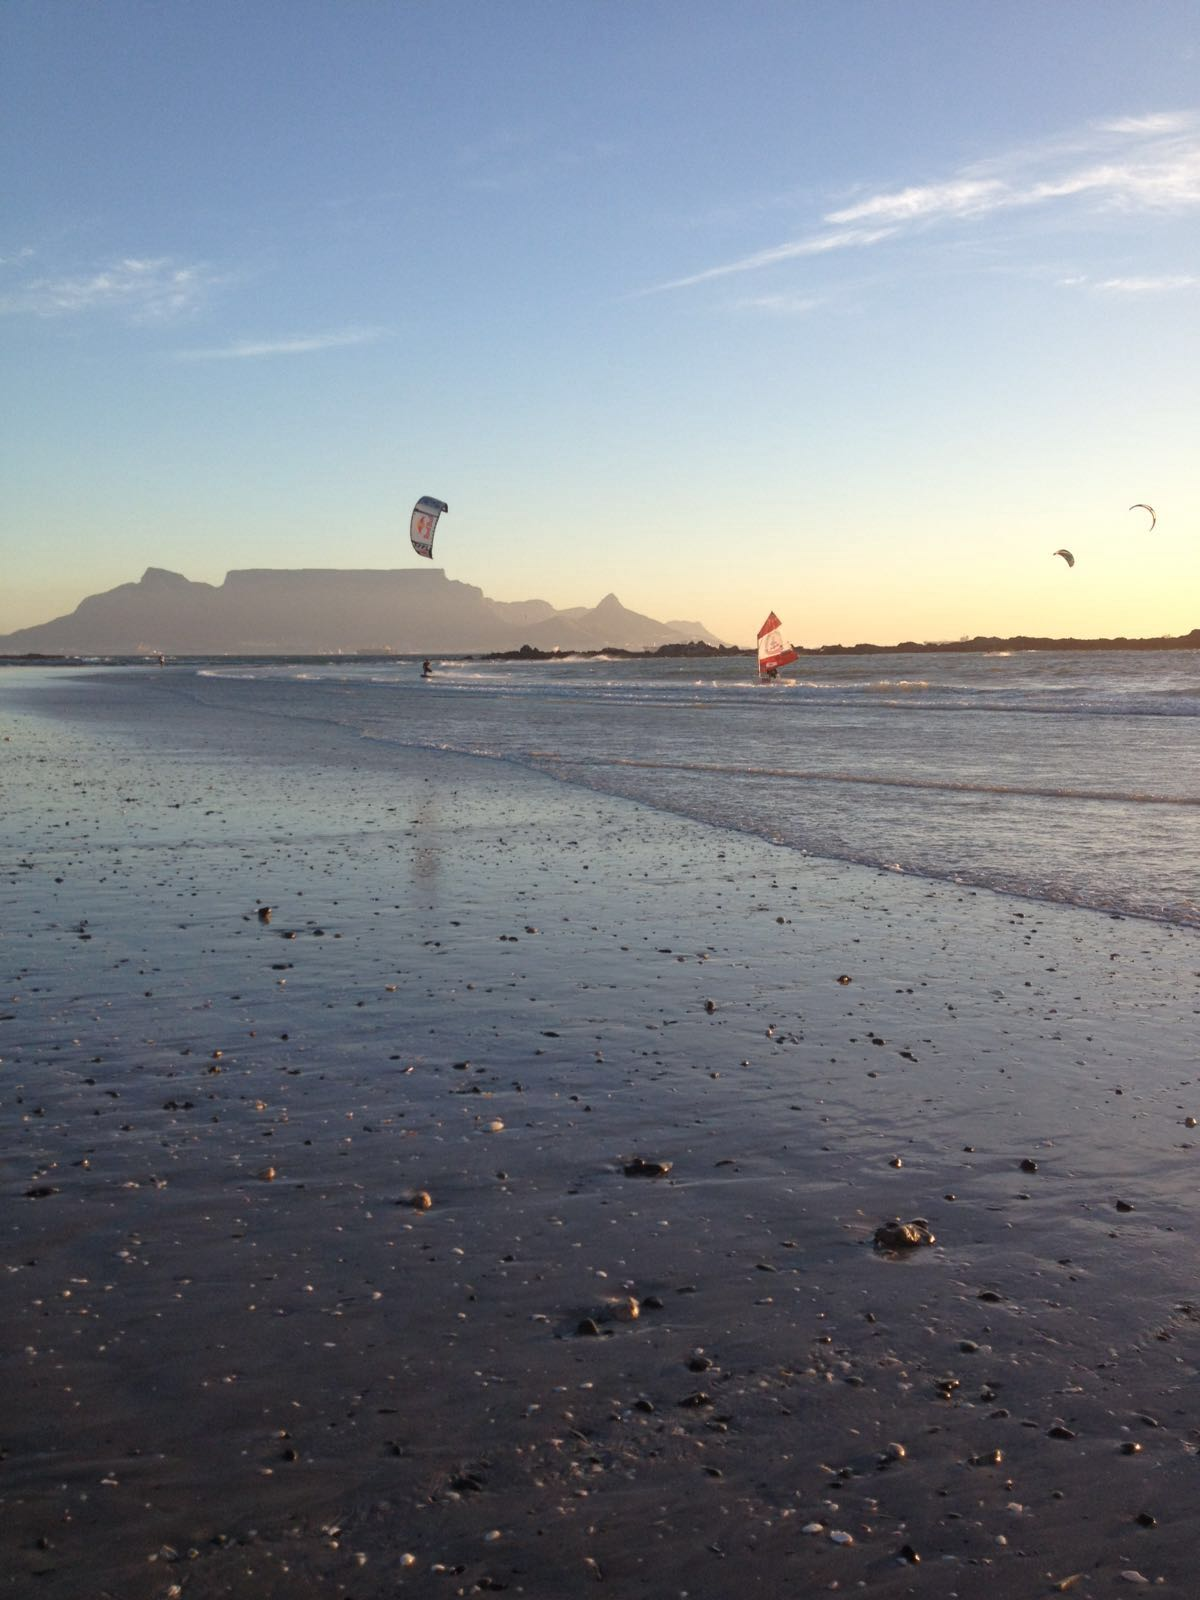 Little Optimist Completes 10km Downwind Dash!